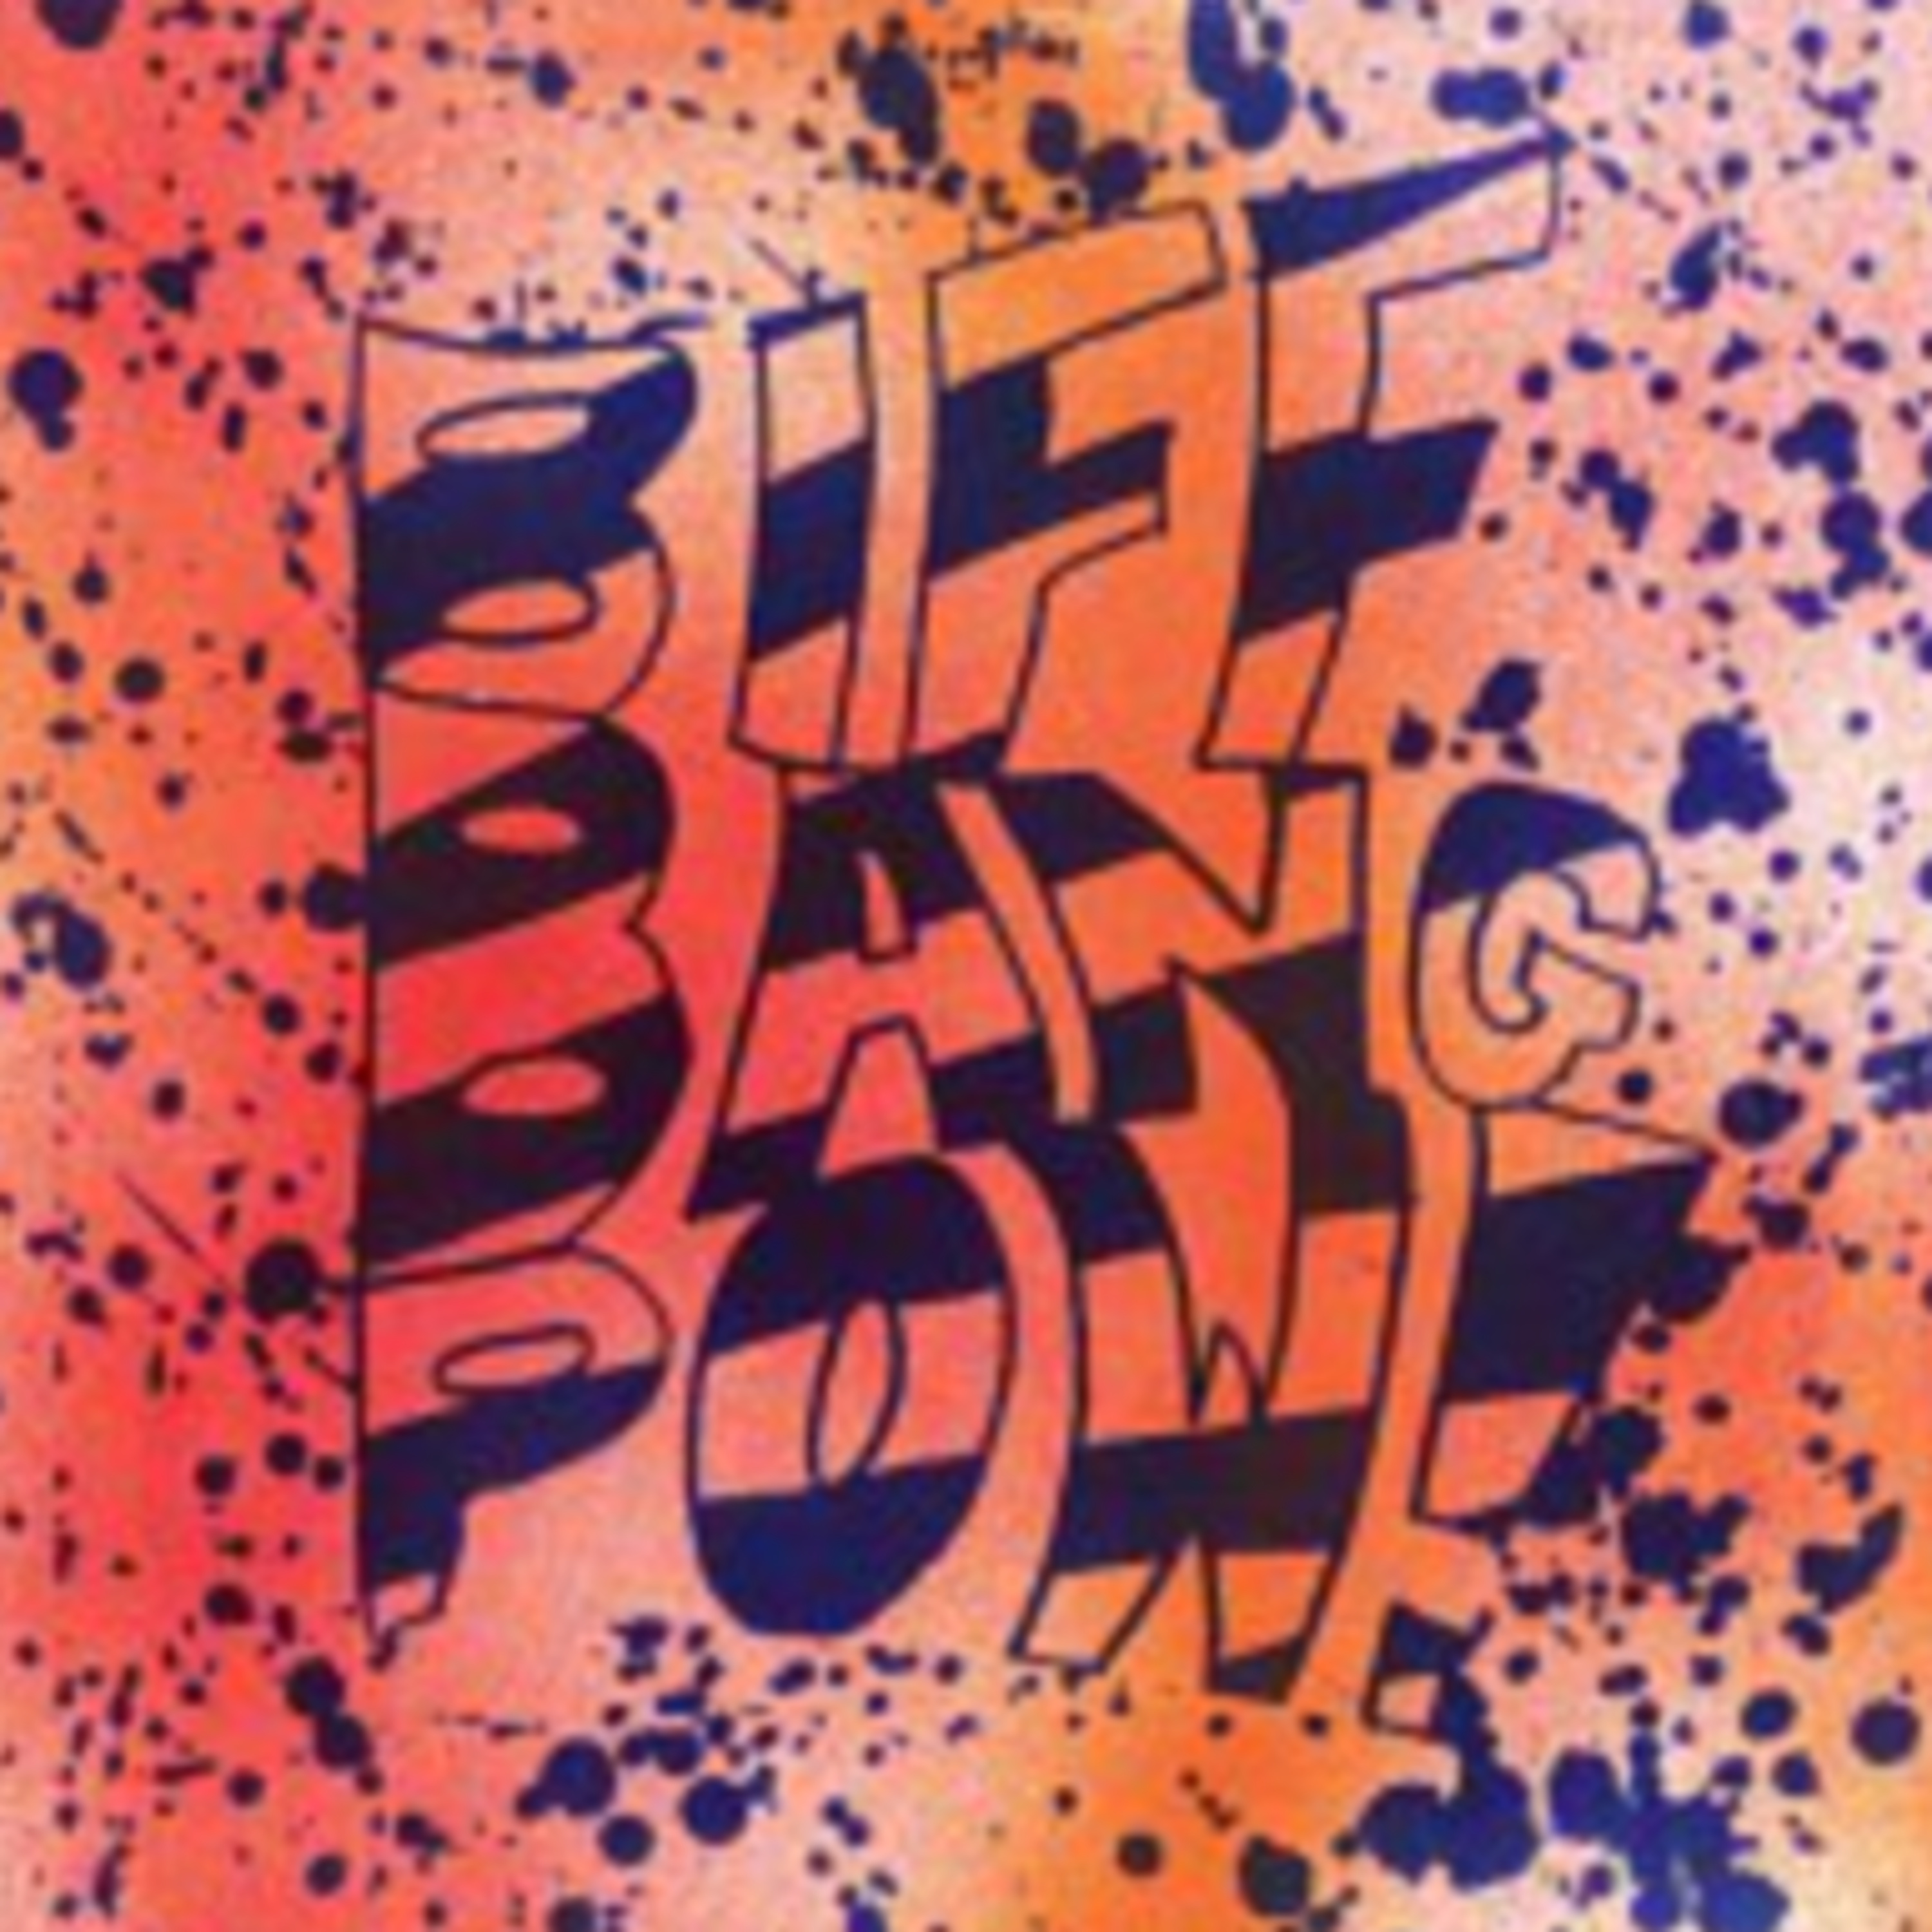 """CRE003 - BIFF BANG POW! """"Fifty Years of Fun"""" w/ Dave Musker (Television Personalities, Revolving Paint Dream, Jasmine Minks, X-Men)"""